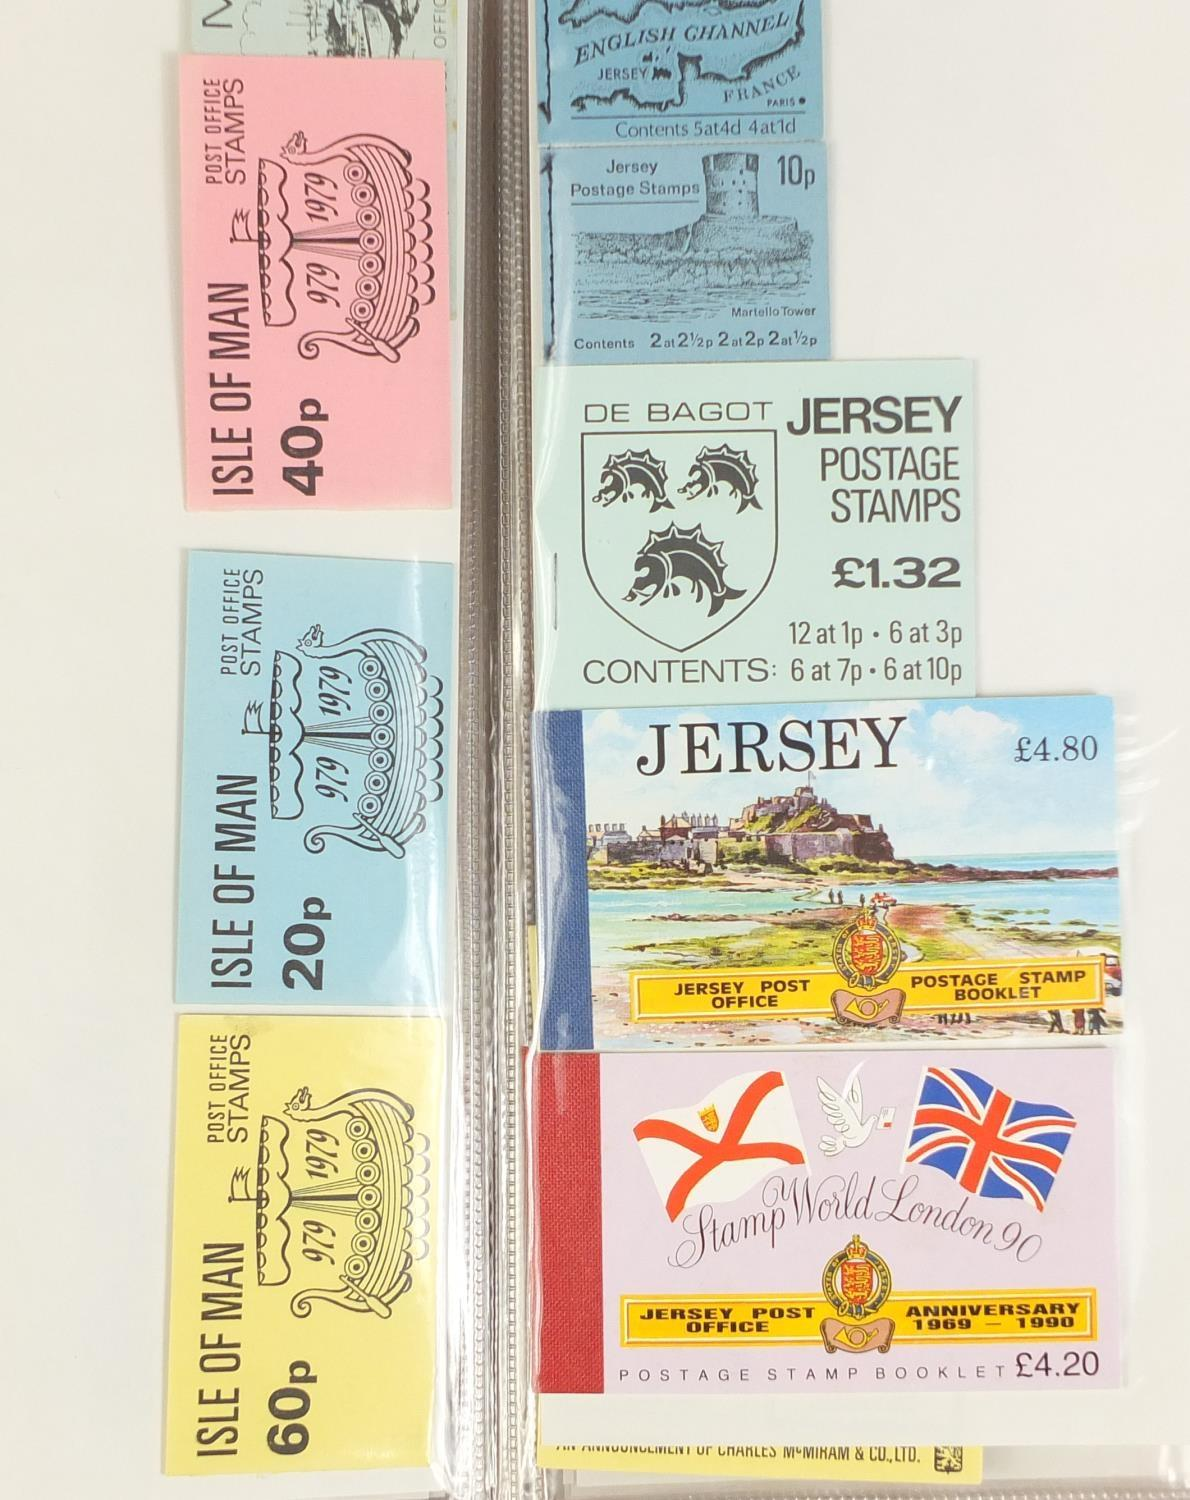 Lot 1049 - Stamp booklets including Royal Mail, GPO, Jersey and Guernsey arranged in an album : For Further